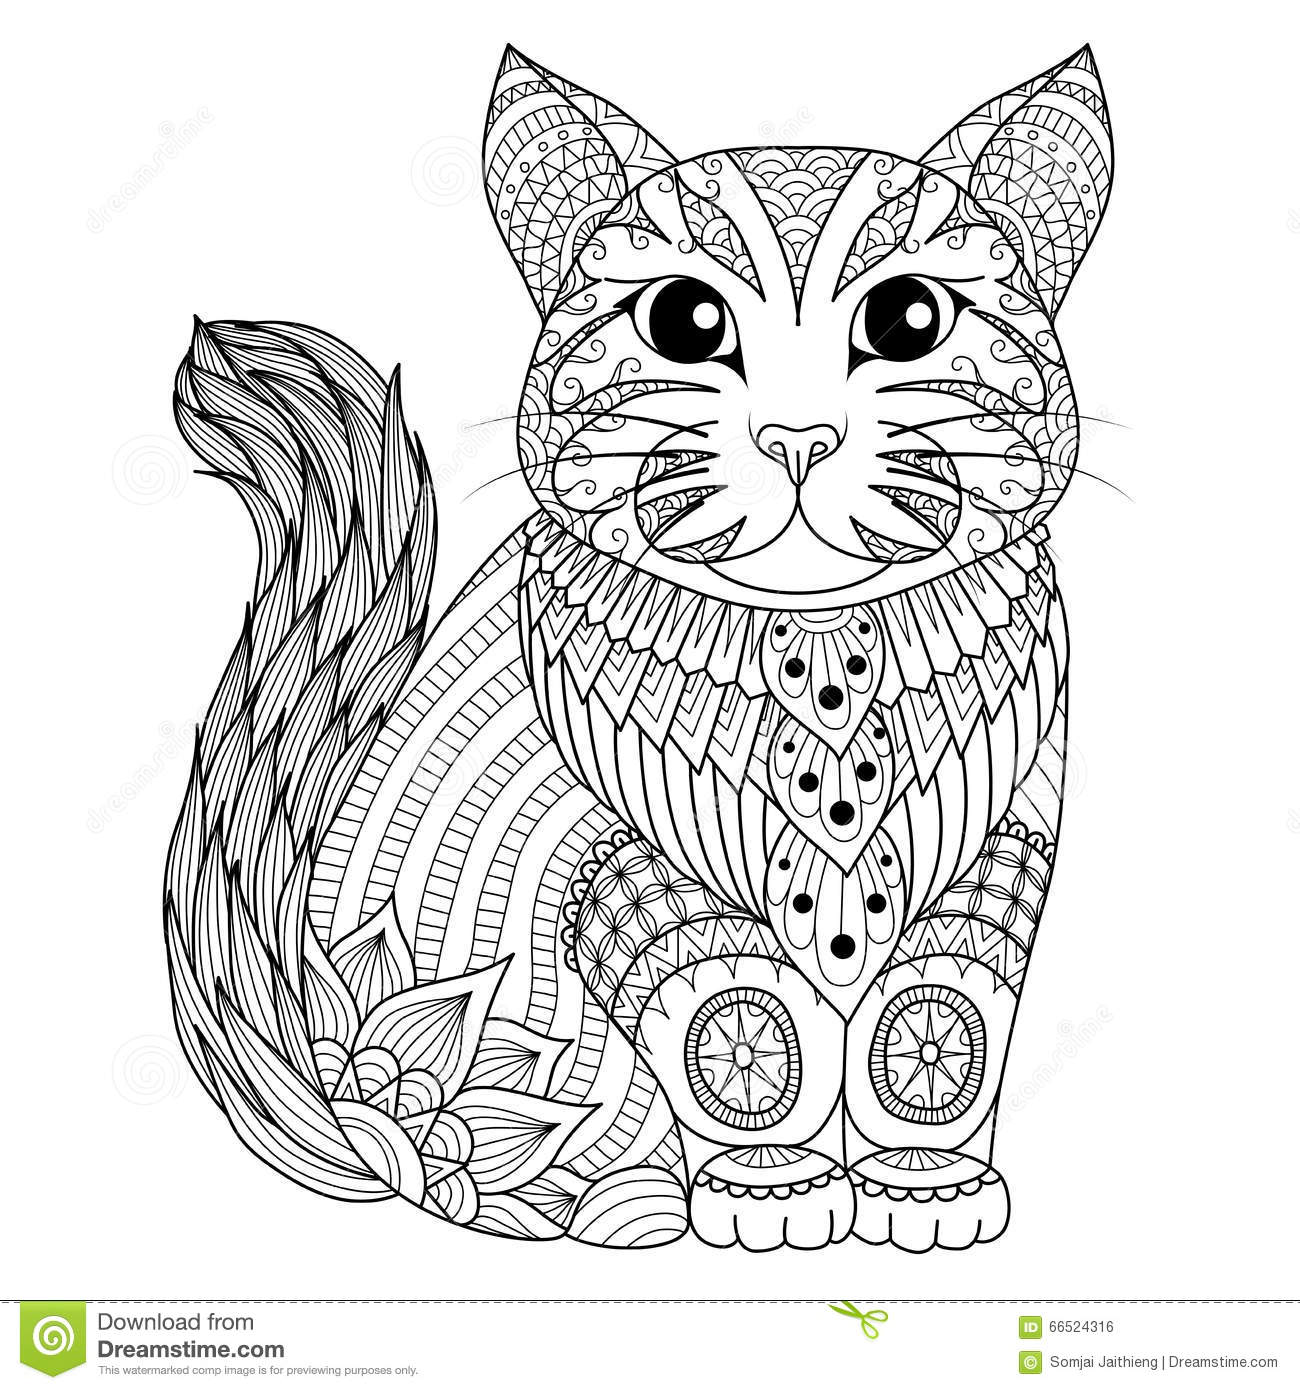 Drawing Zentangle Cat For Coloring Page, Shirt Design Effect, Logo ...